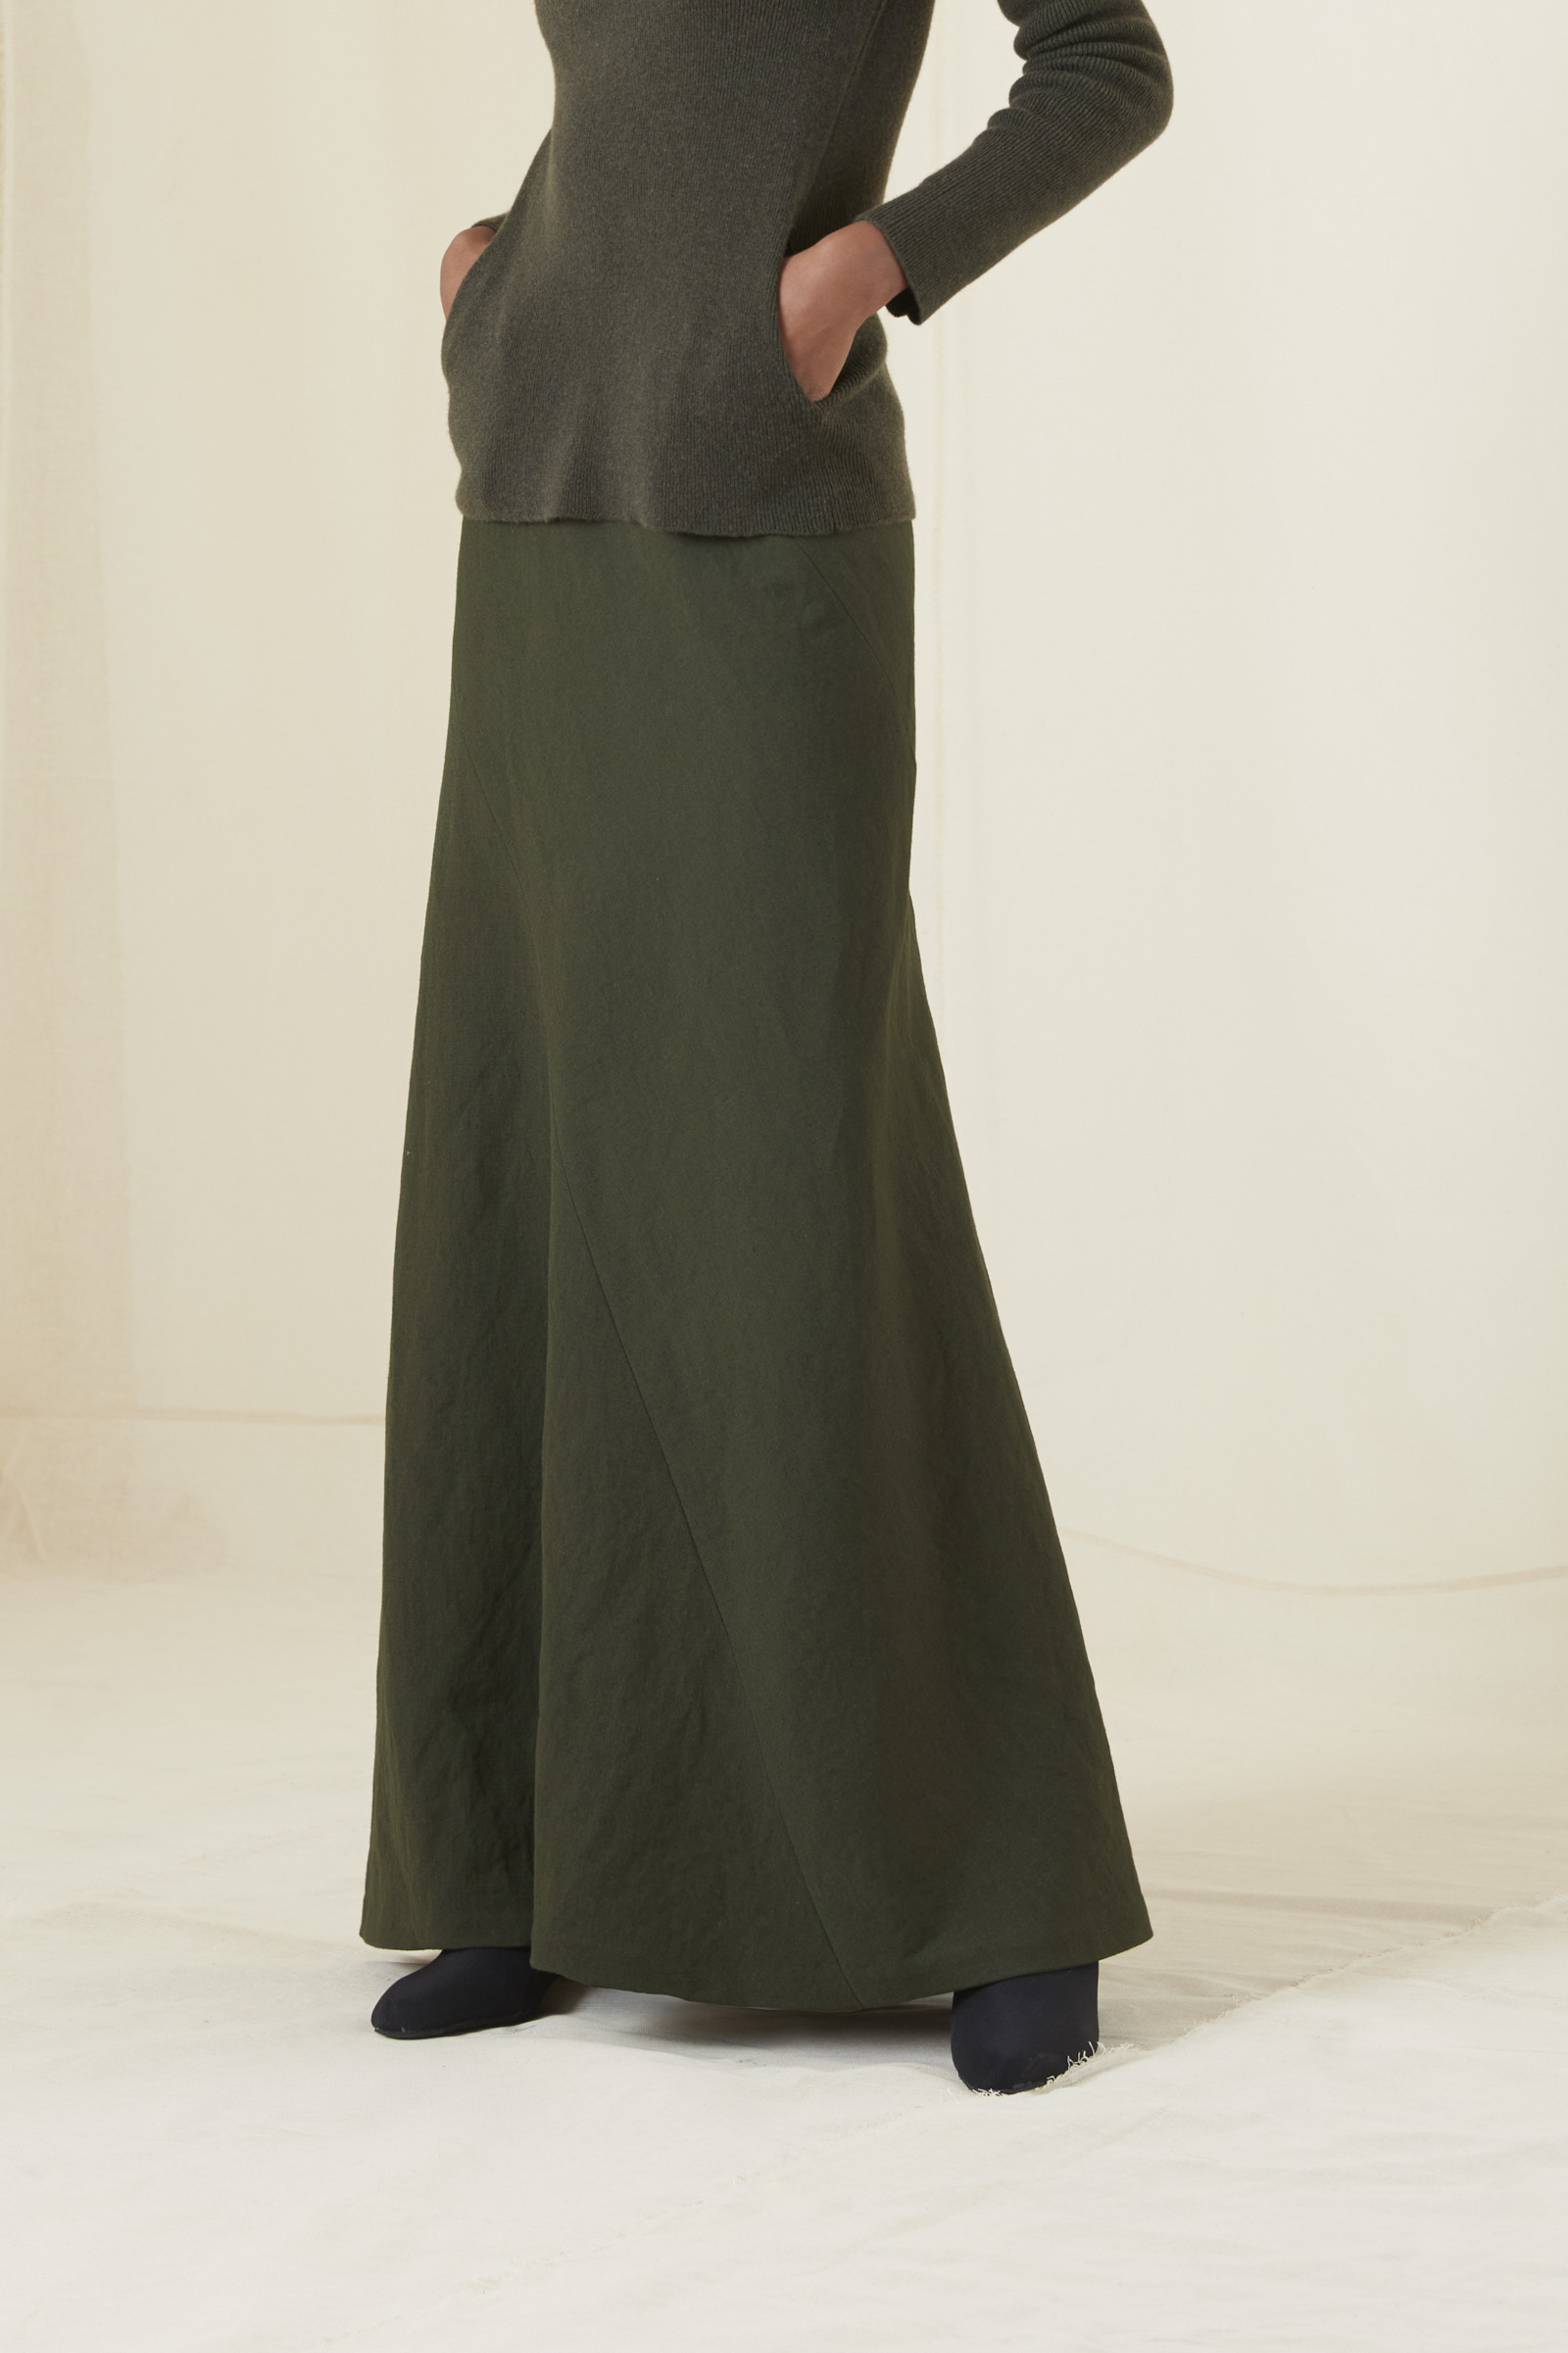 ARTO GREEN SKIRT - Cortana